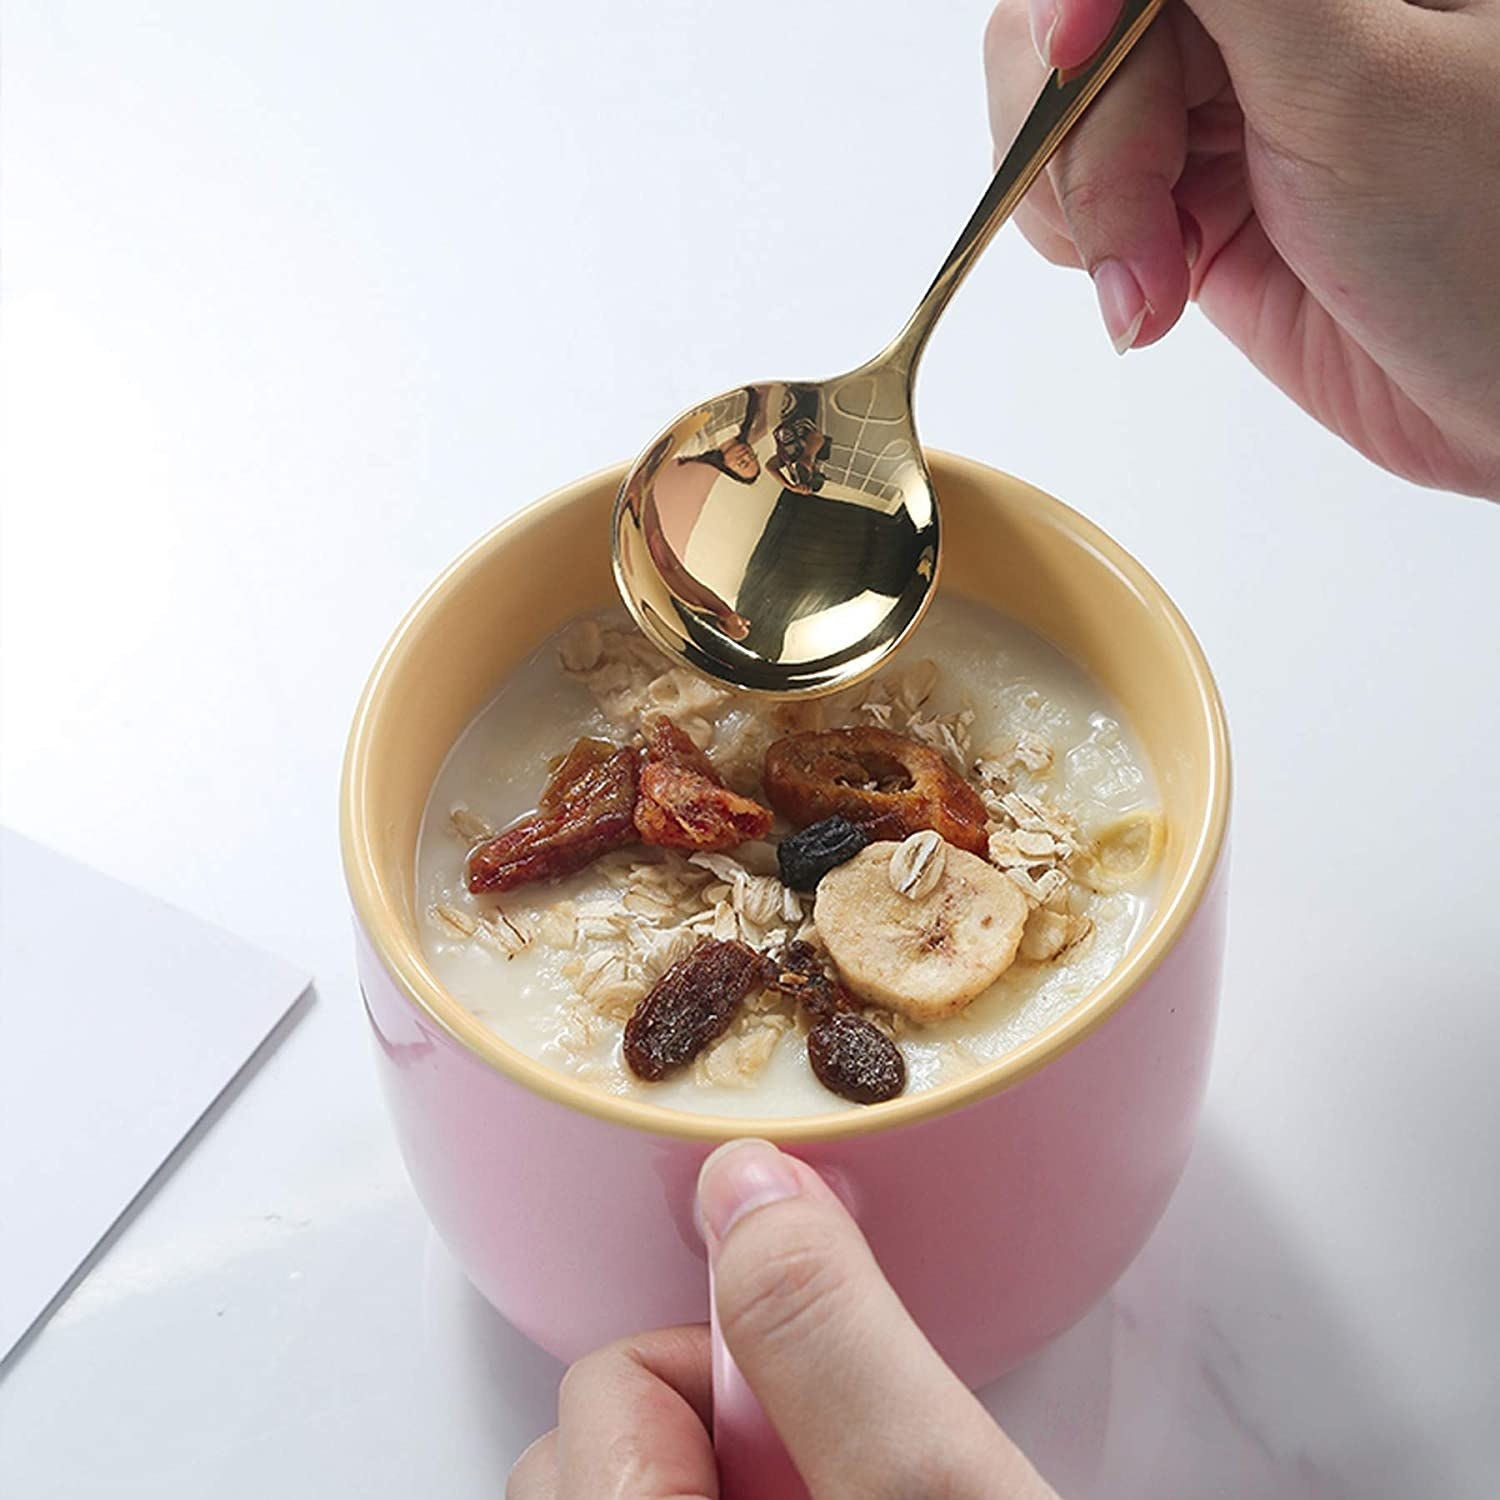 Someone dipping a spoon into the mug; it is filled with oatmeal